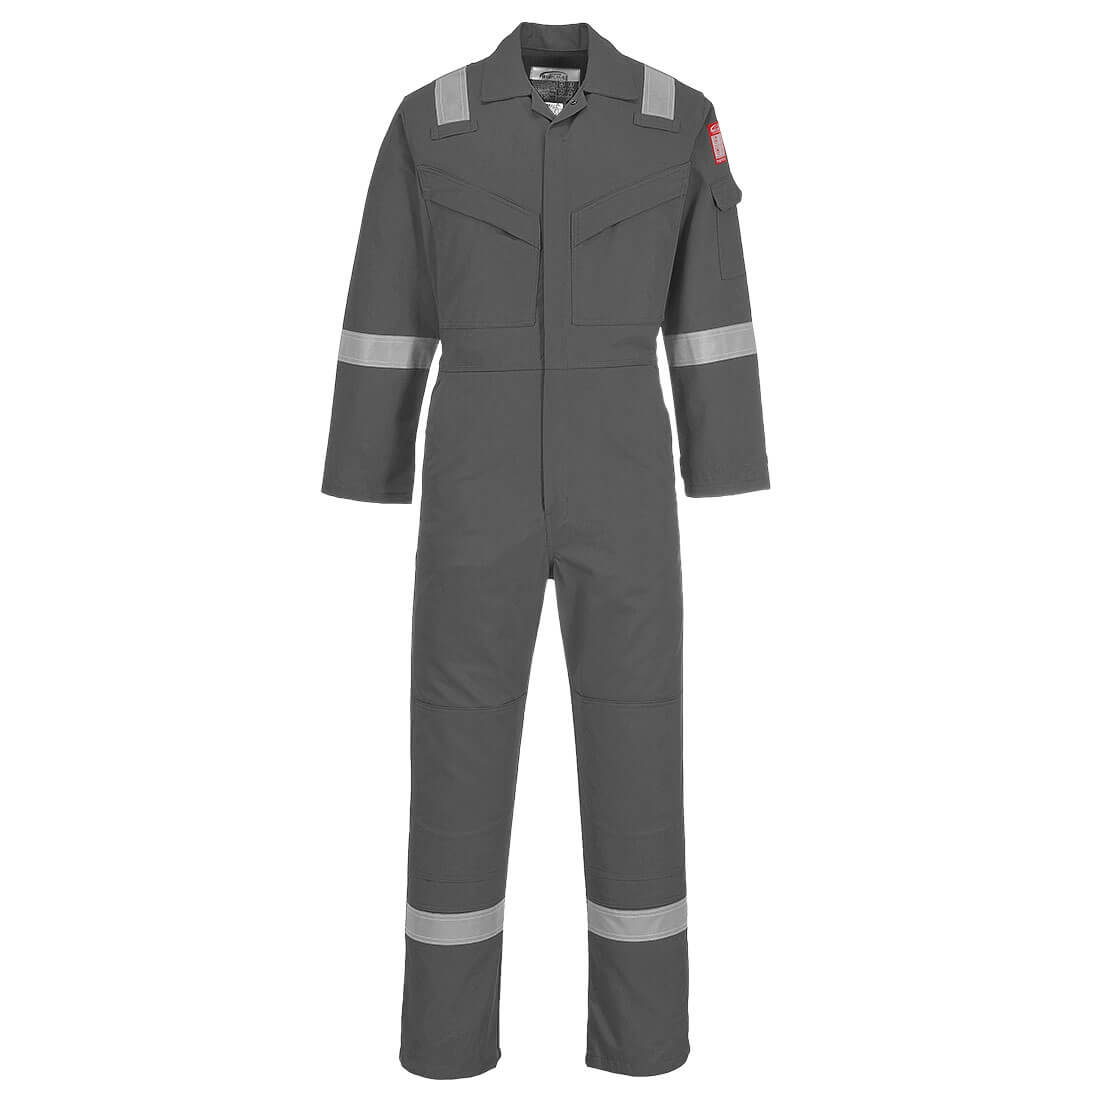 Image of Biz Flame Aberdeen Flame Resistant Antistatic Coverall Grey Extra Small 32""